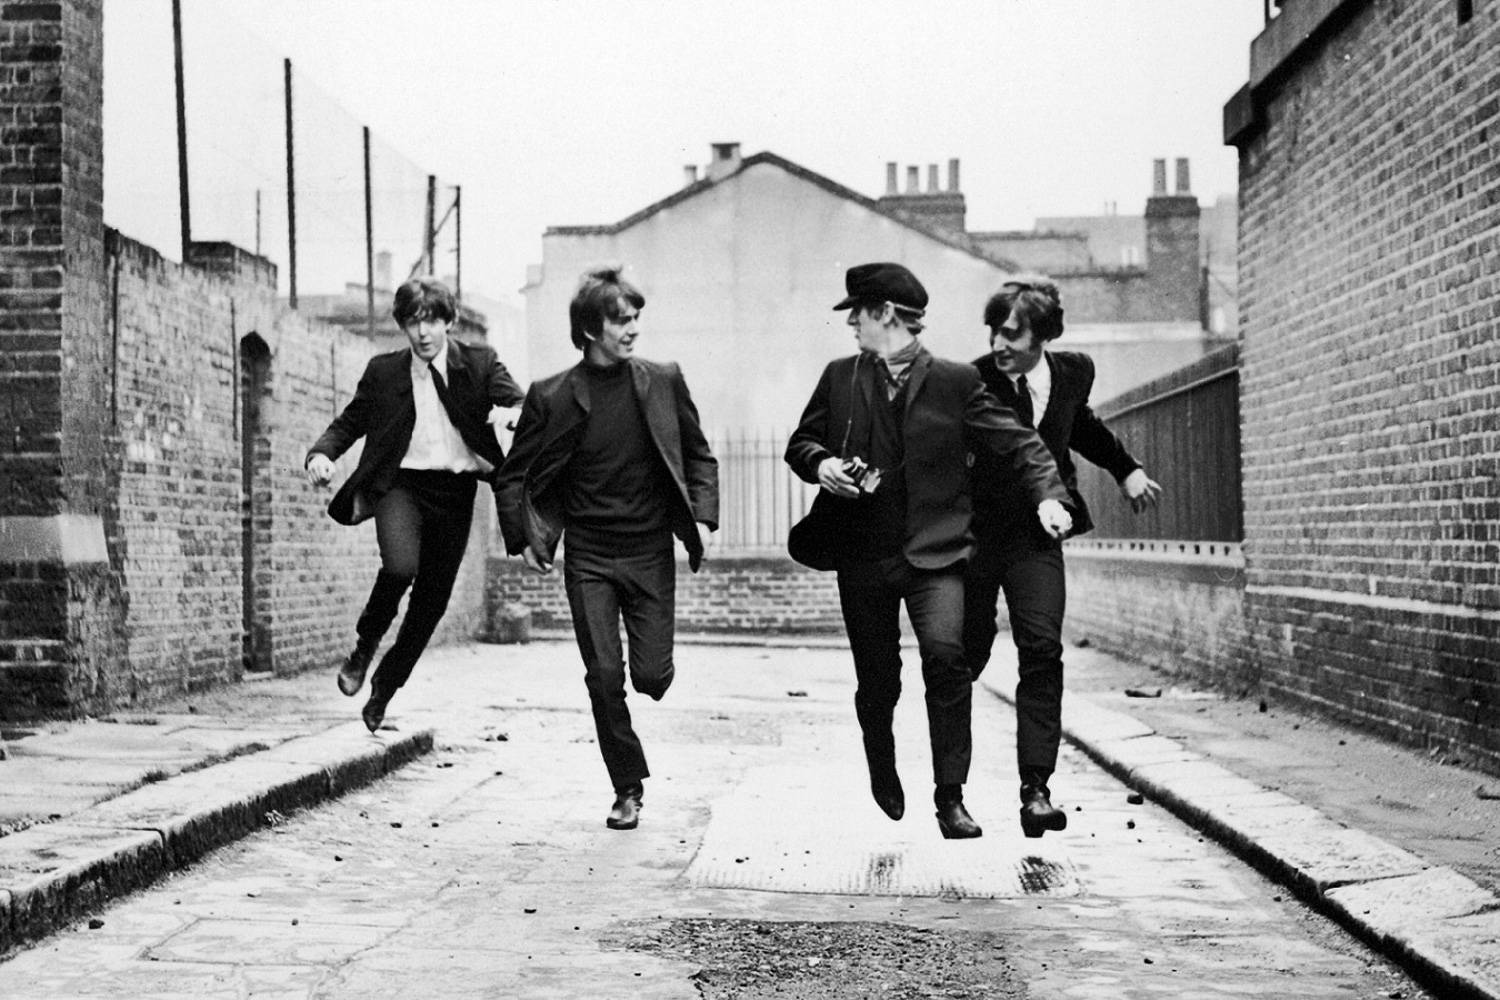 Image still of The Beatles running through an alleyway in Notting Hill in the film A Hard Day's Night.